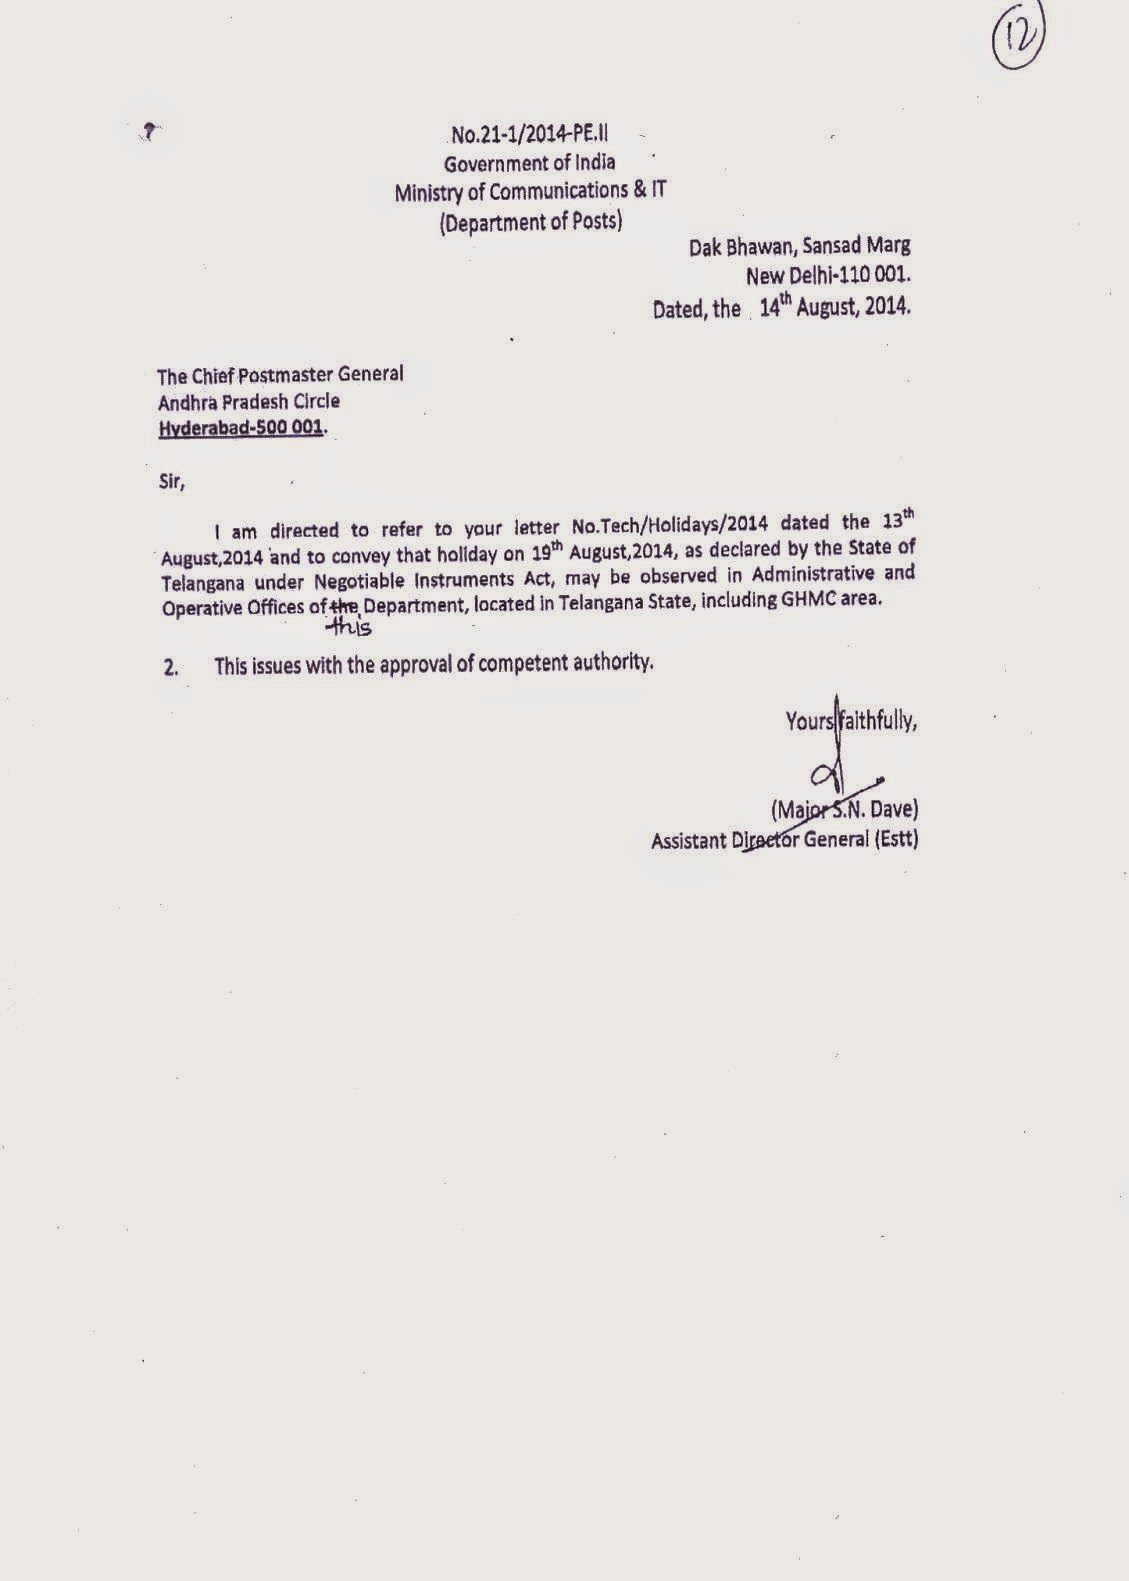 Delhi India Postal Code All India Postal Employees Union Gds Nfpe 19 08 2014